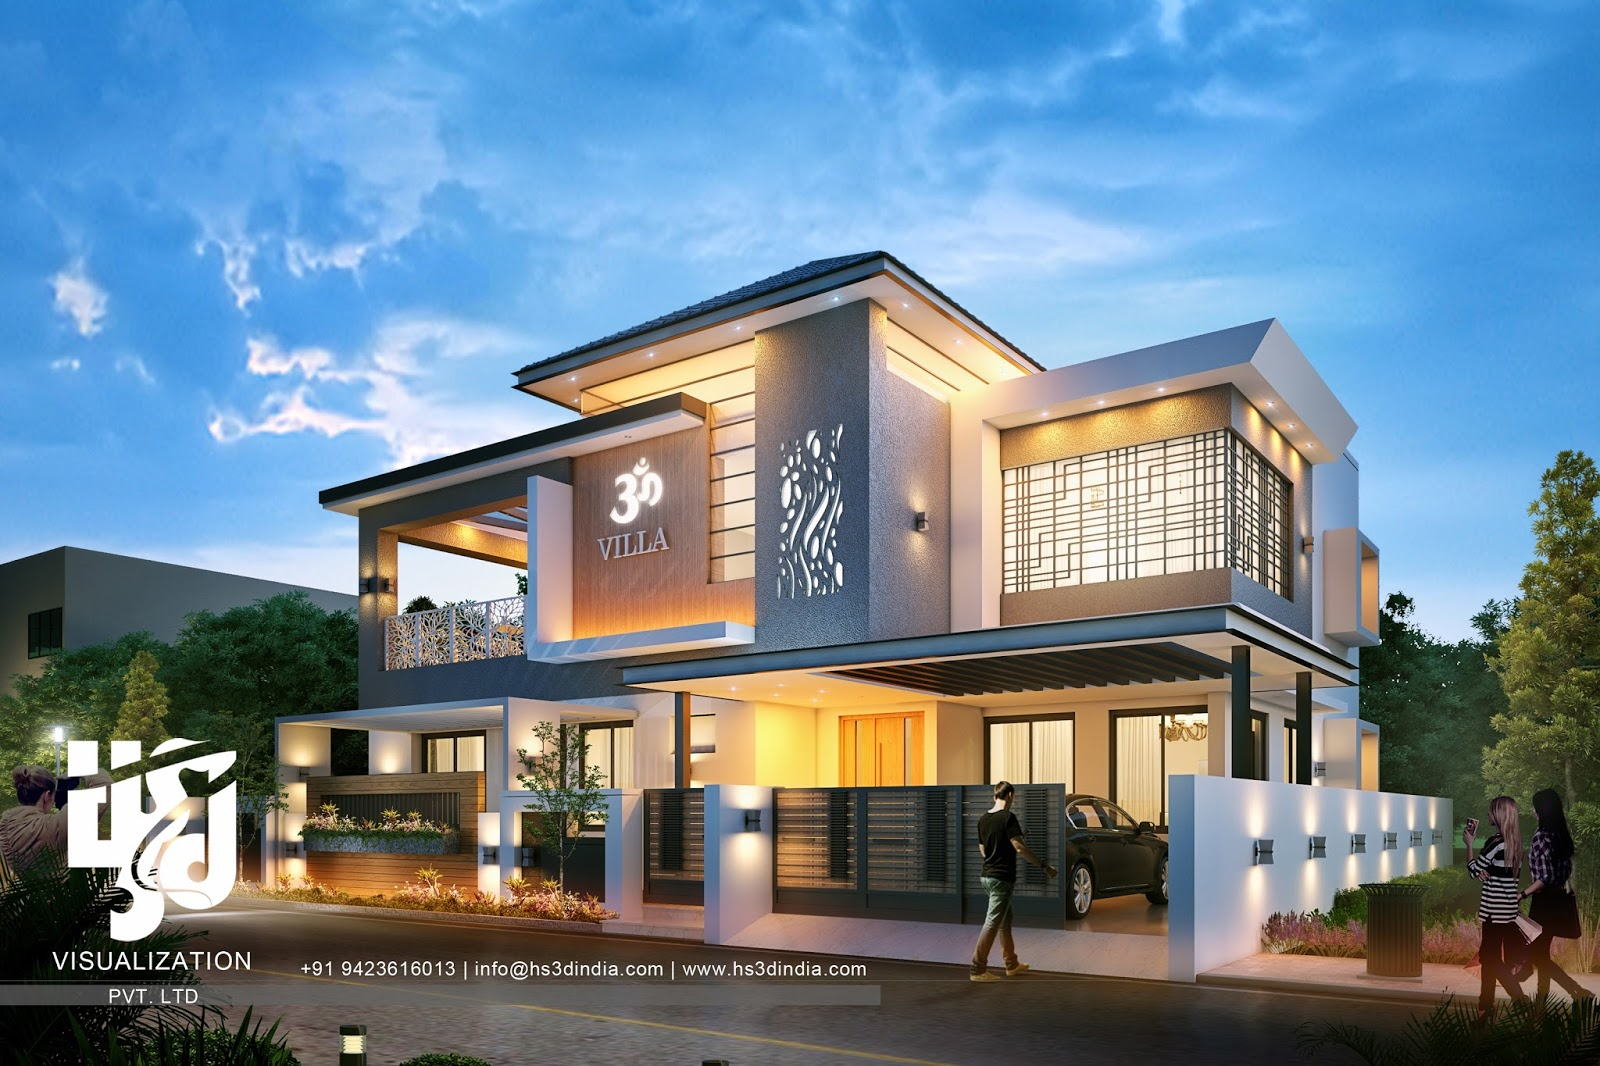 3d Flat Roof Design Mall Exterior Elevation Night Rendering Architectural Modern Indian Architecture Google Search Bungalows